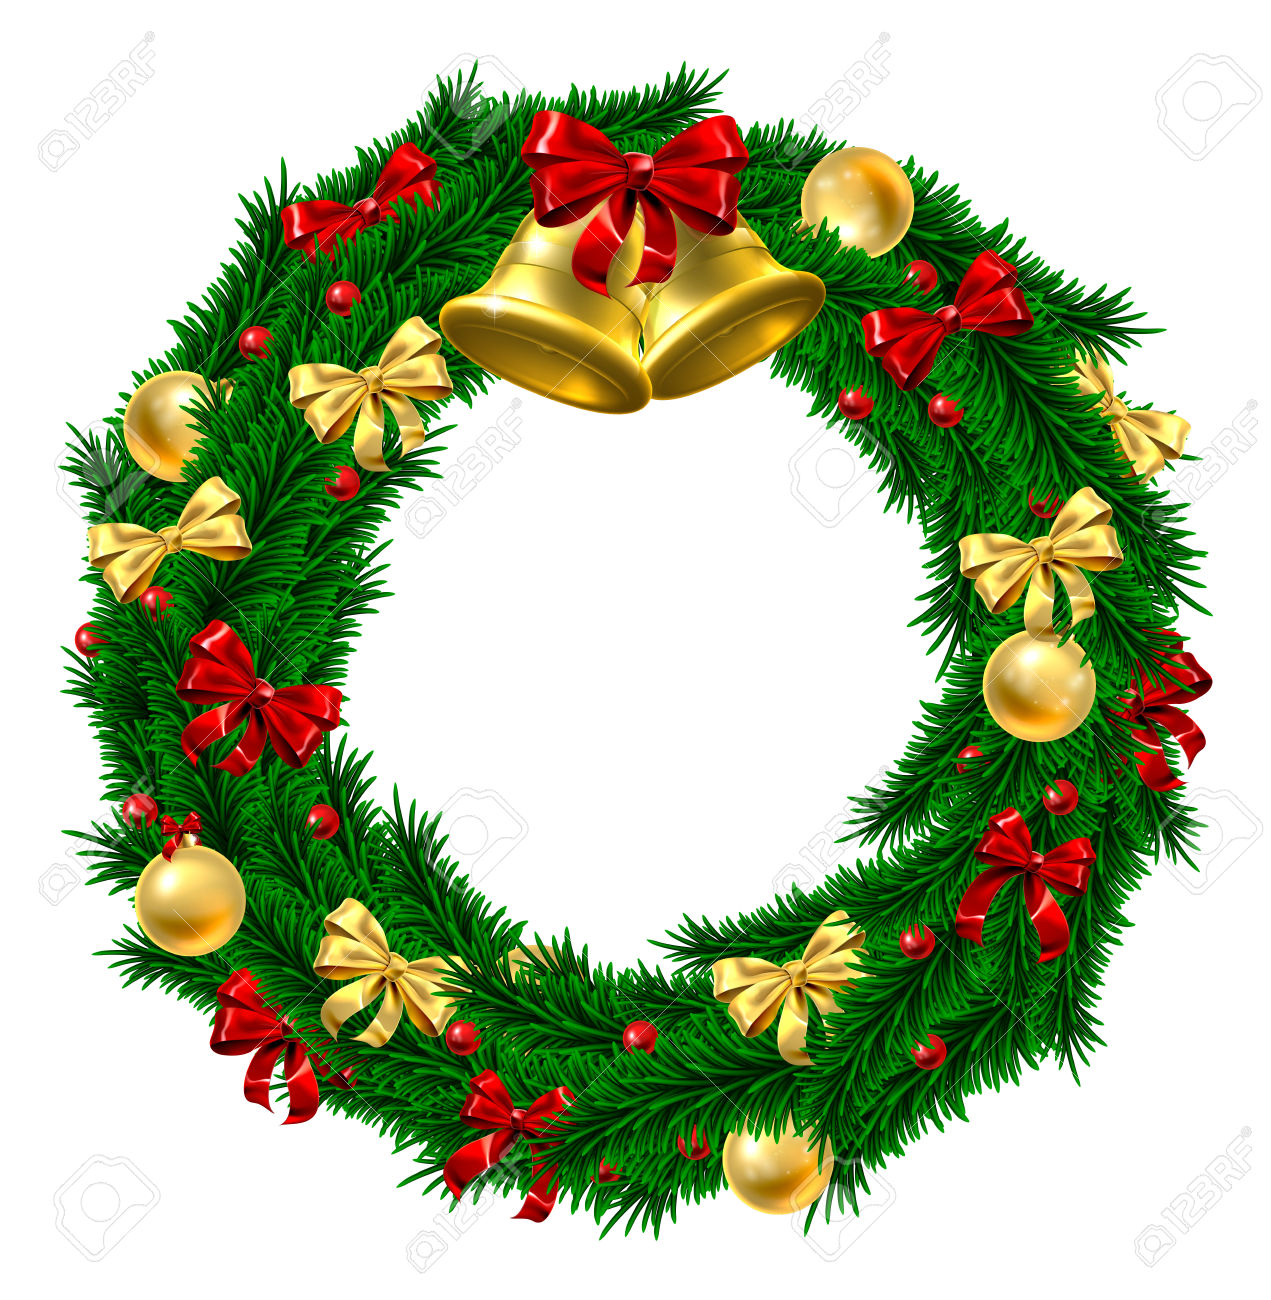 A Christmas Door Wreath Decoration With Gold And Red Bows And.